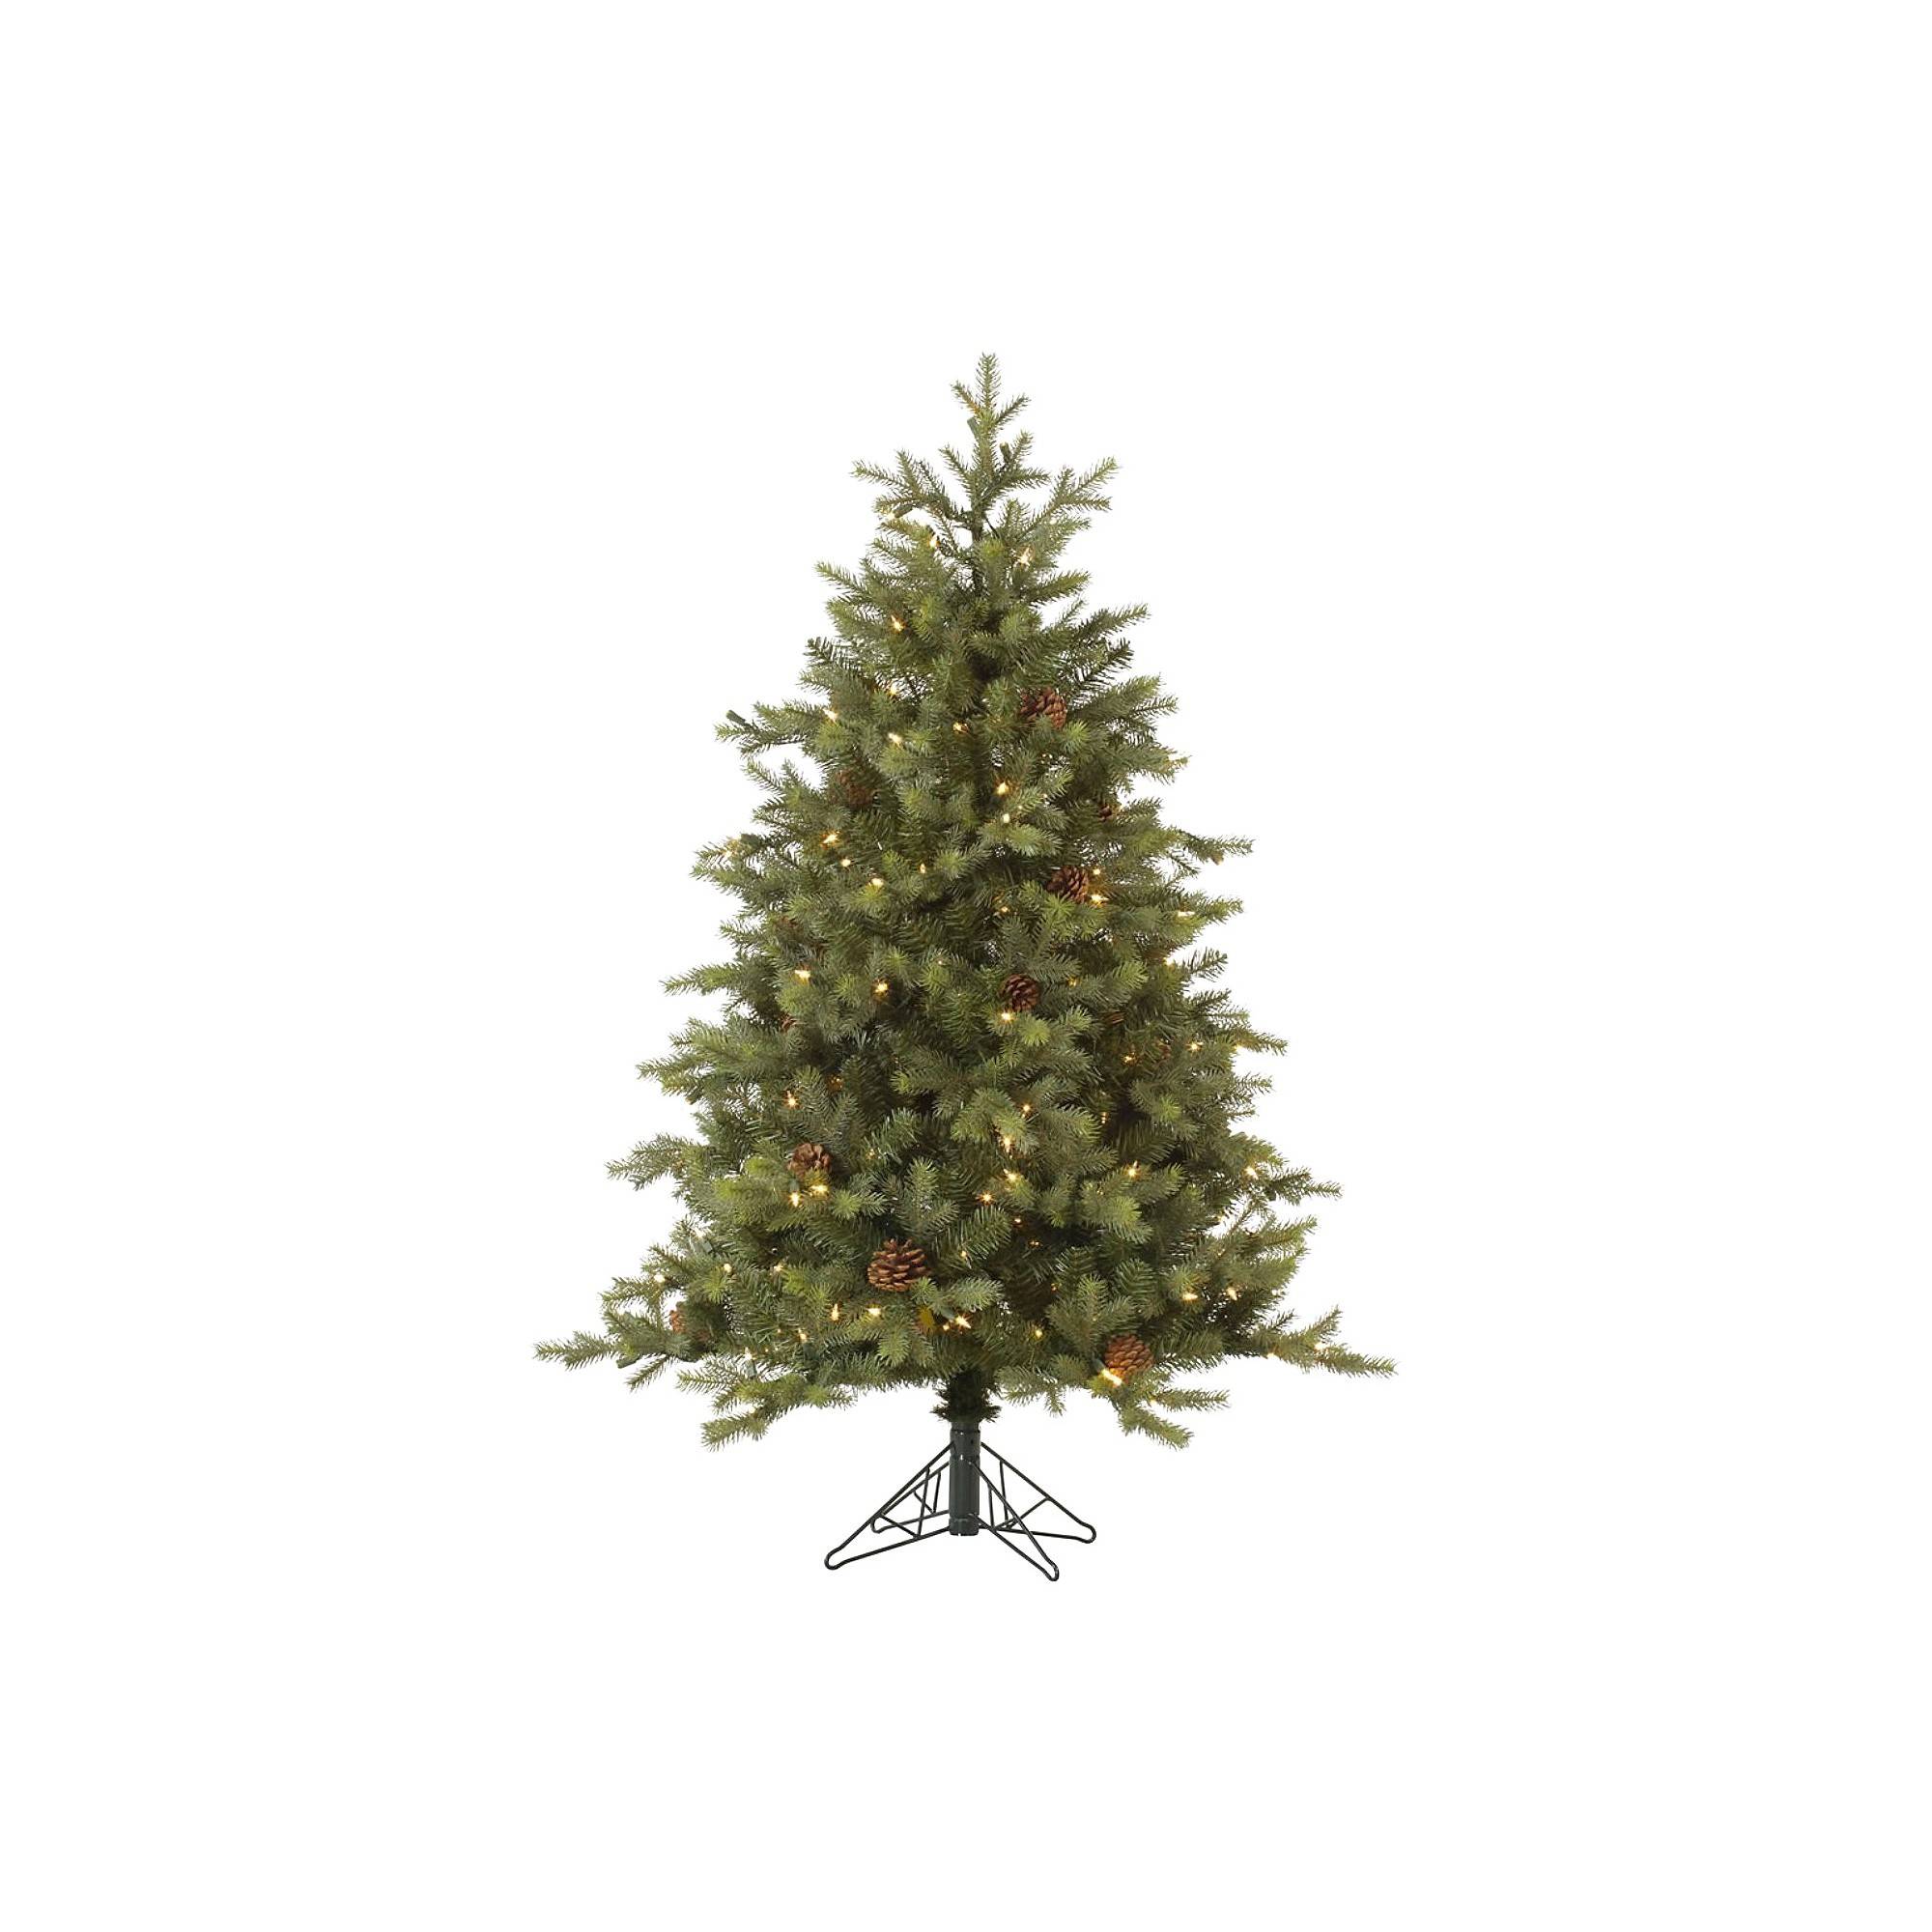 12ft Rocky Mountain Fir Led Pre-Lit Instant Artificial Christmas Tree Full - Multicolor Lights